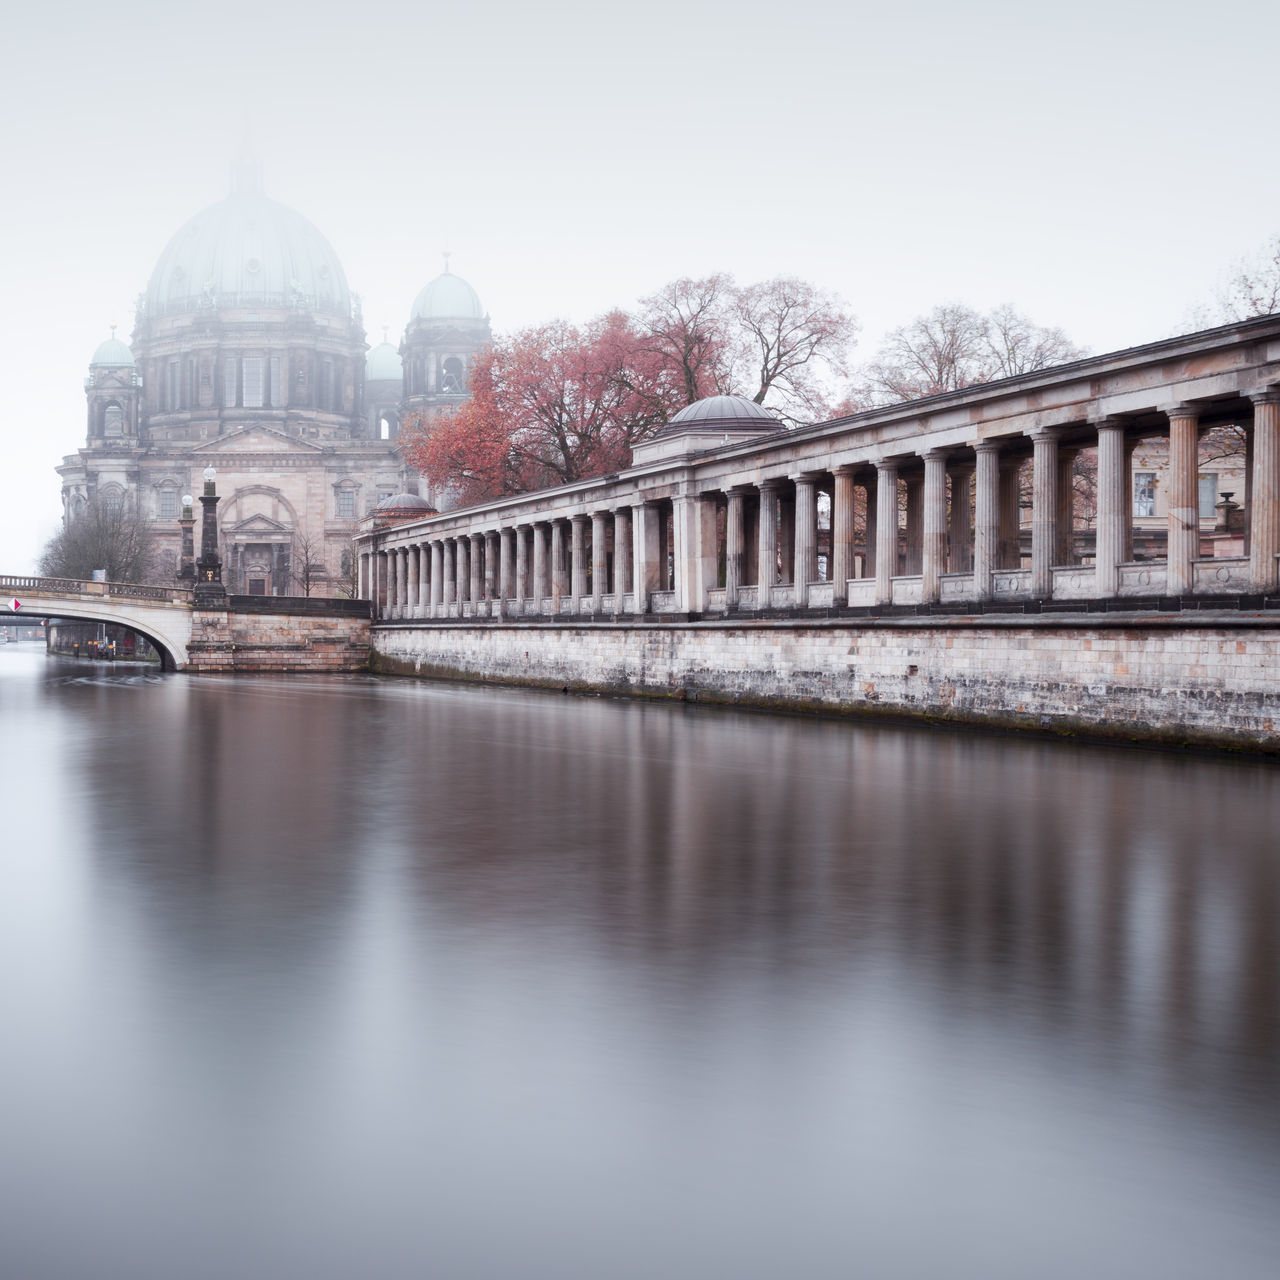 Berlin Cathedral during a foggy morning in autumn Architecture Autumn Mood Berlin Cathedral Berlin City Berlin Travel Berliner Dom Bridge - Man Made Structure Building Exterior Built Structure City Cityscape Day Dome Fineart International Landmark Longexposure No People Outdoors Philipp Dase Reflection Spree River Berlin Travel Destination Travel Destinations Urban Icon Water